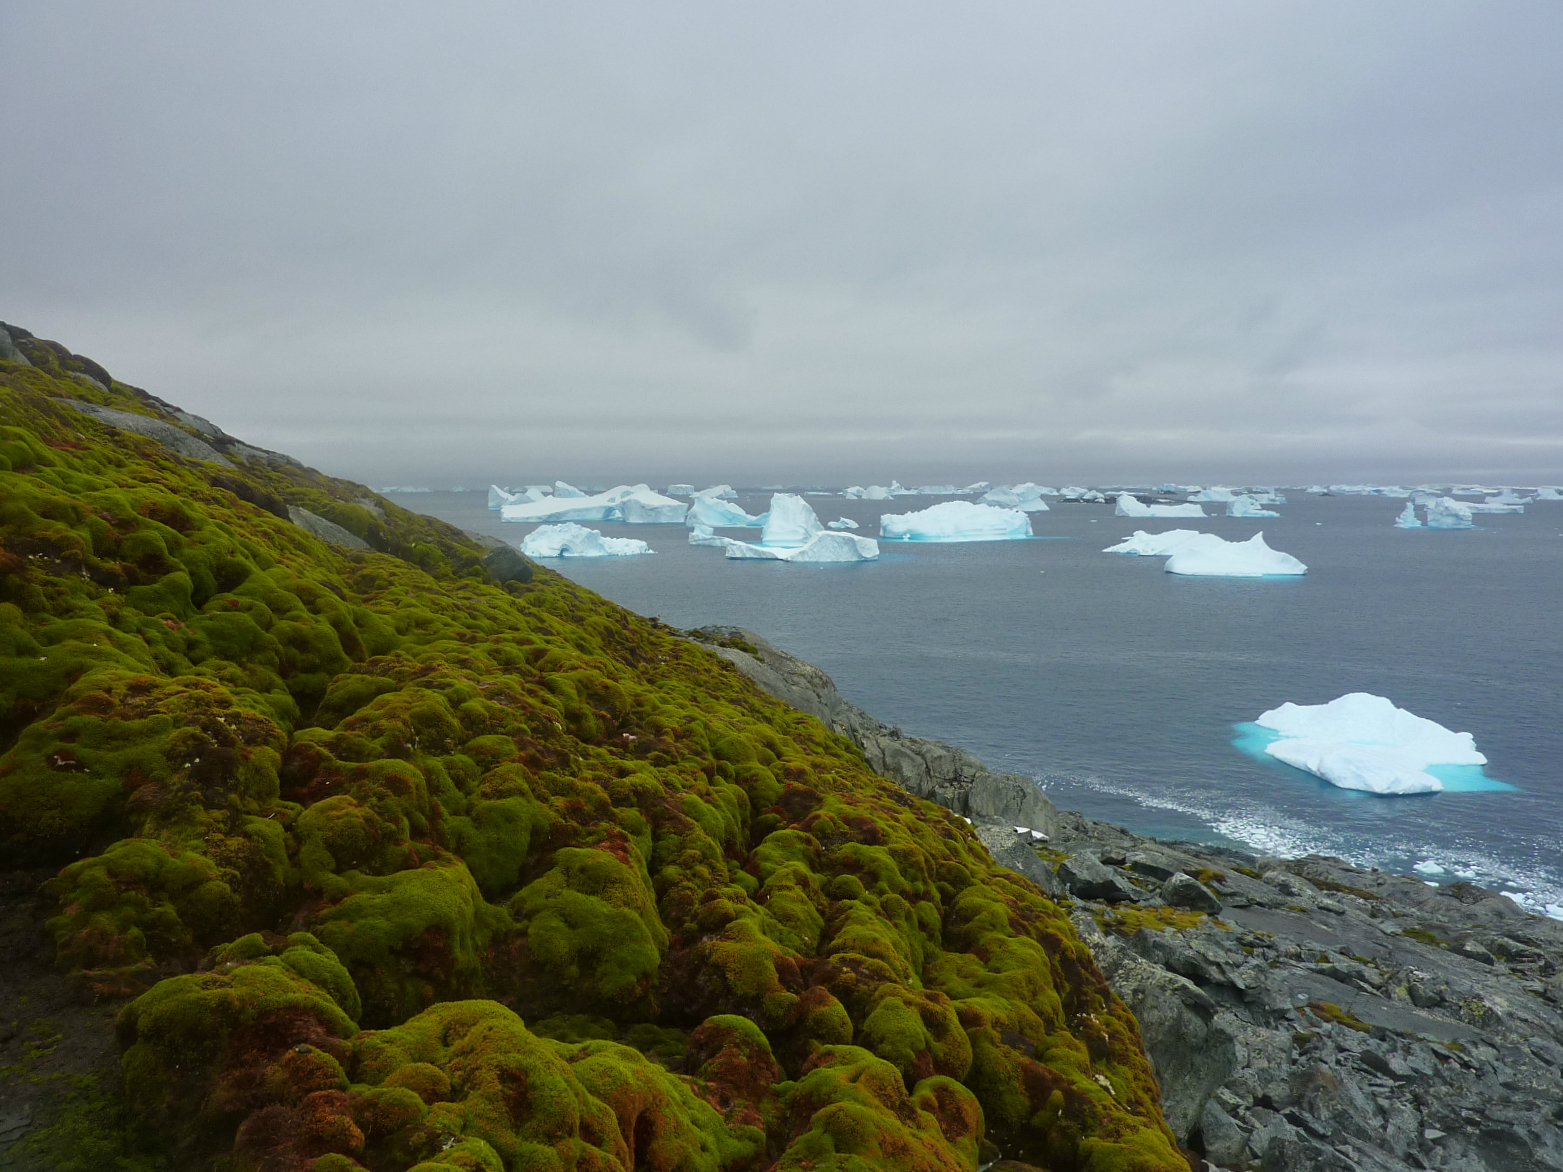 Antarctic moss banks